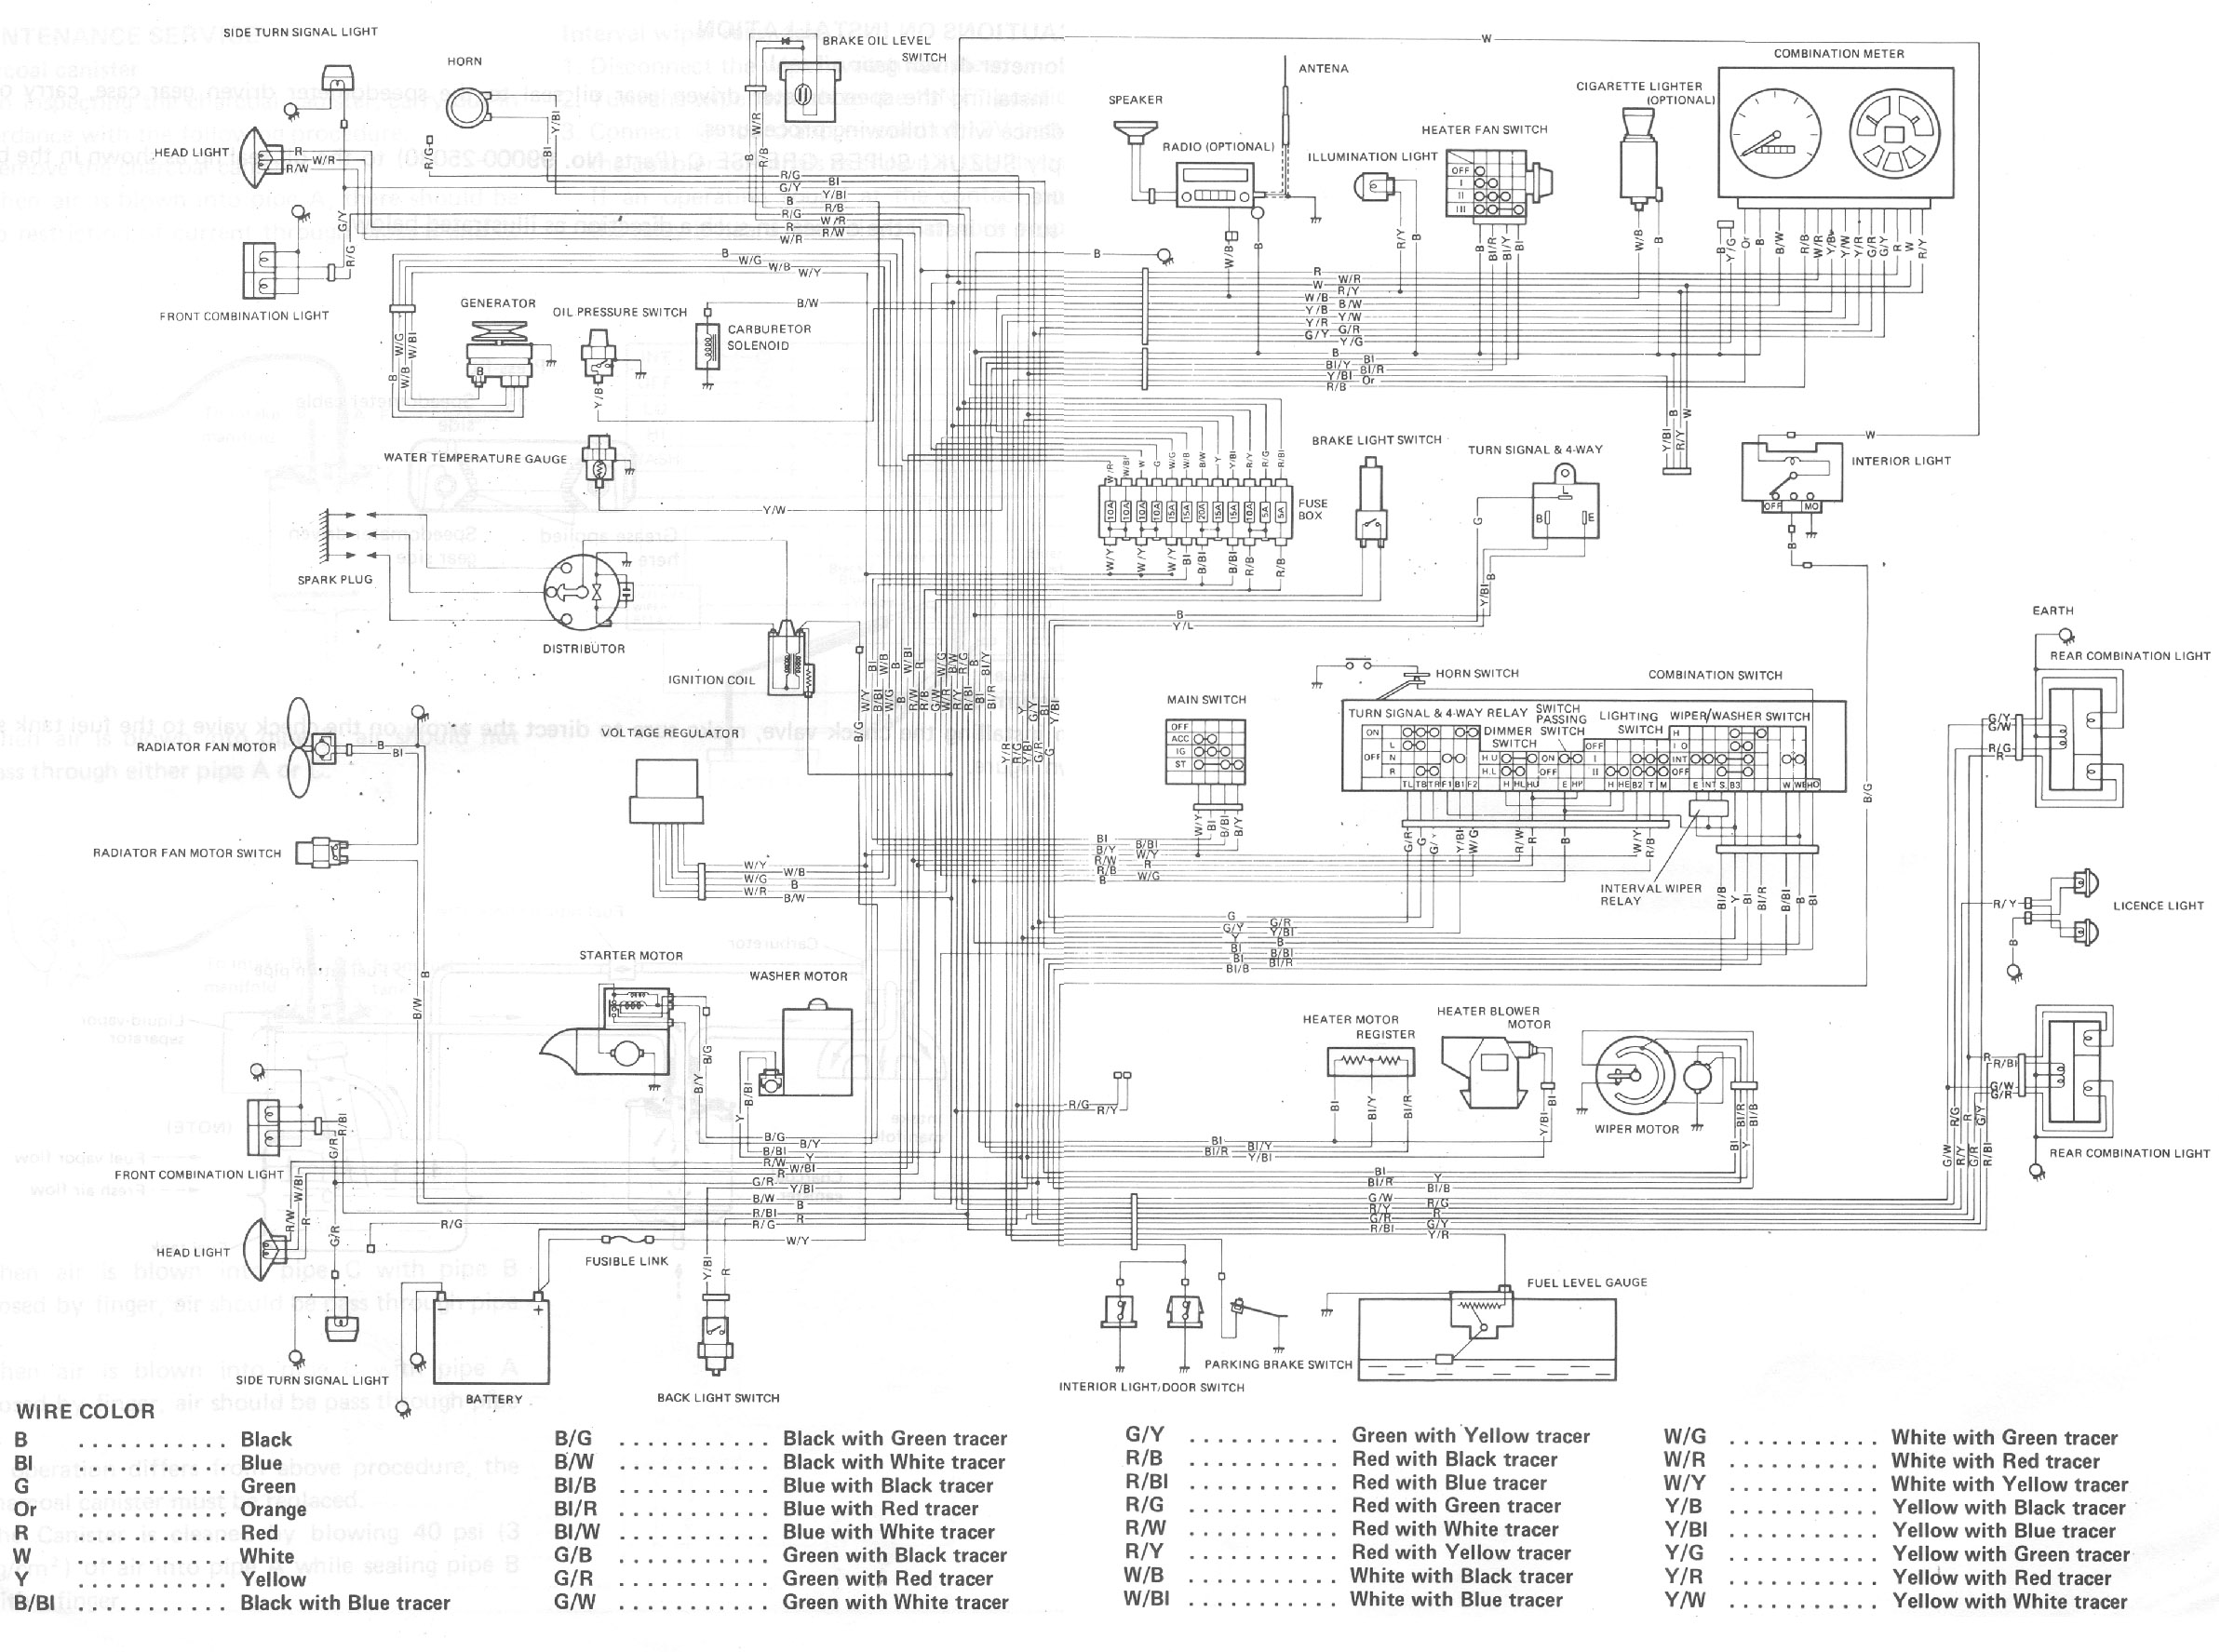 bad boy mower wiring diagram relay circuit diagram symbols u2022 rh veturecapitaltrust co